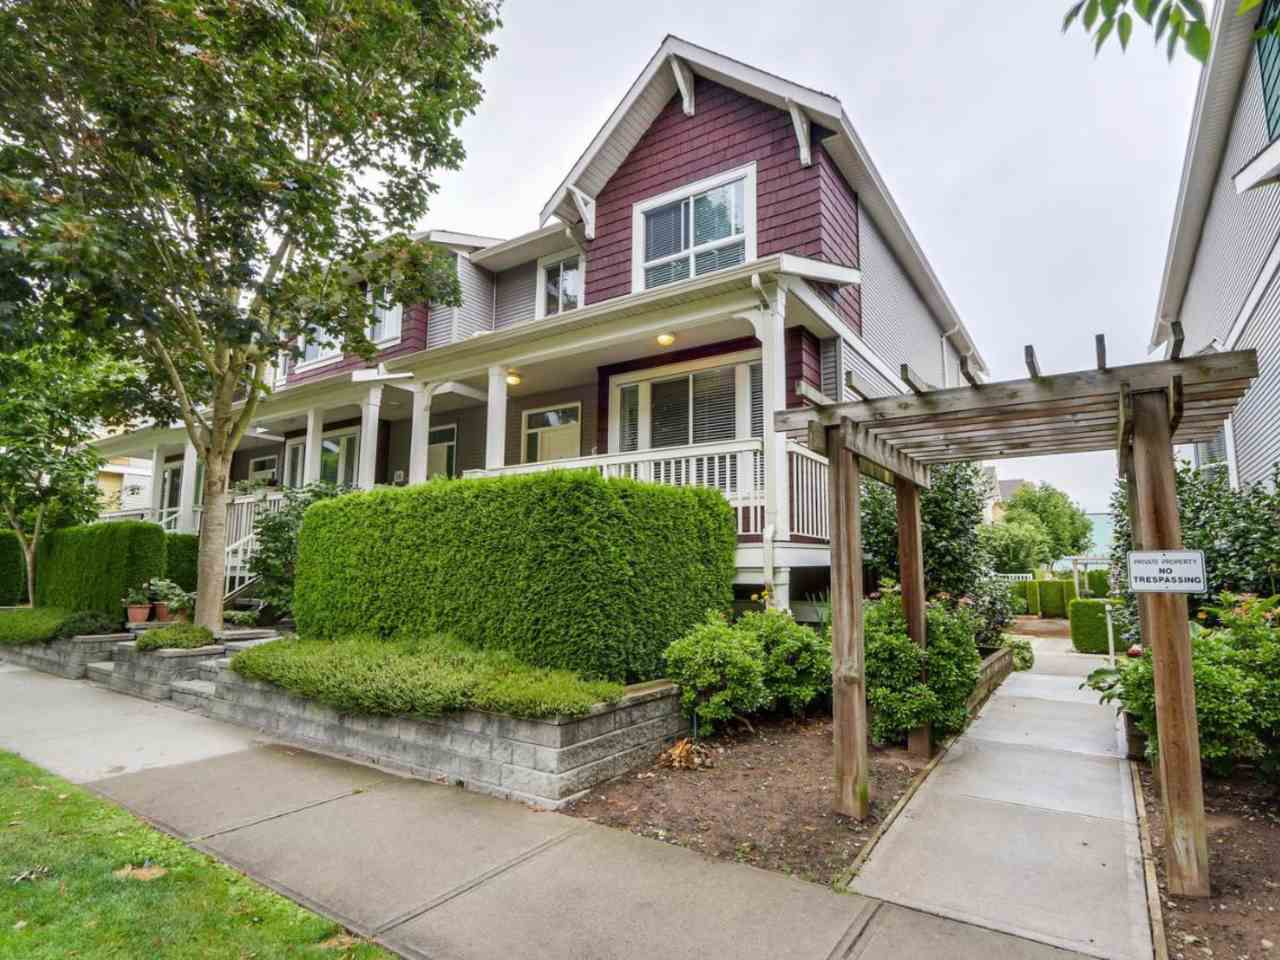 """Main Photo: 57 5999 ANDREWS Road in Richmond: Steveston South Townhouse for sale in """"RIVERWIND"""" : MLS®# R2148376"""